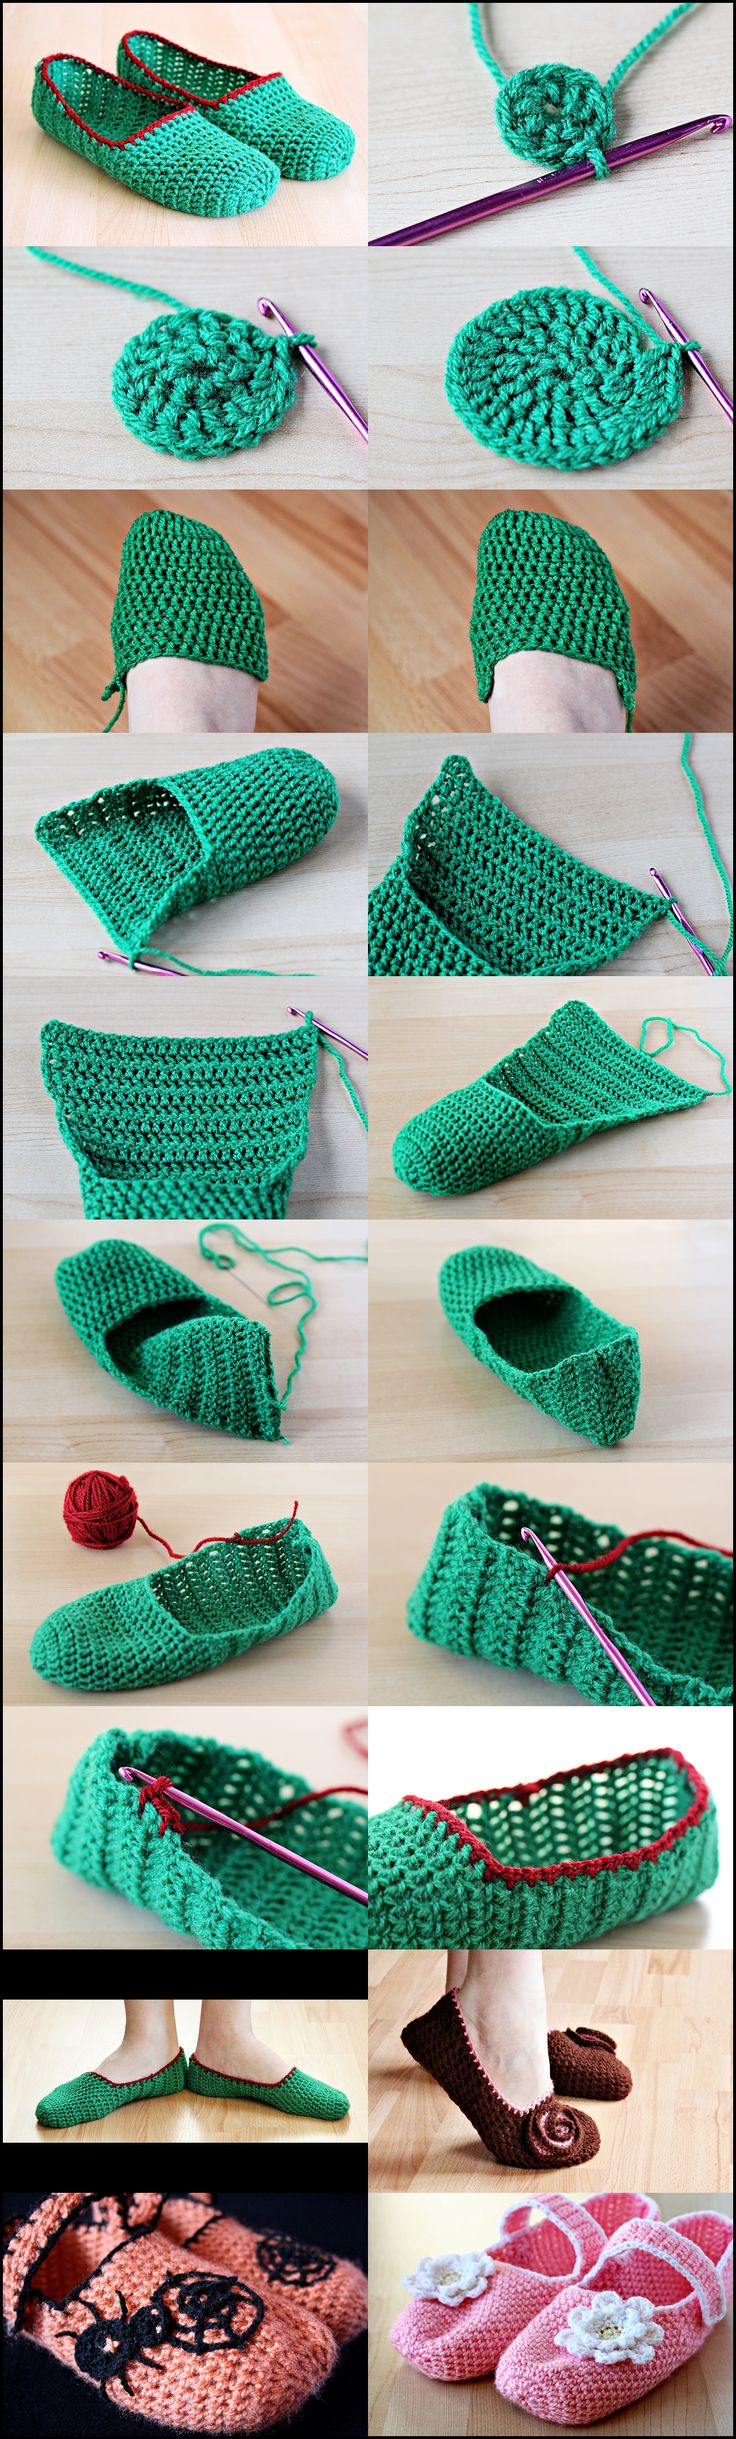 Crochet Slippers m